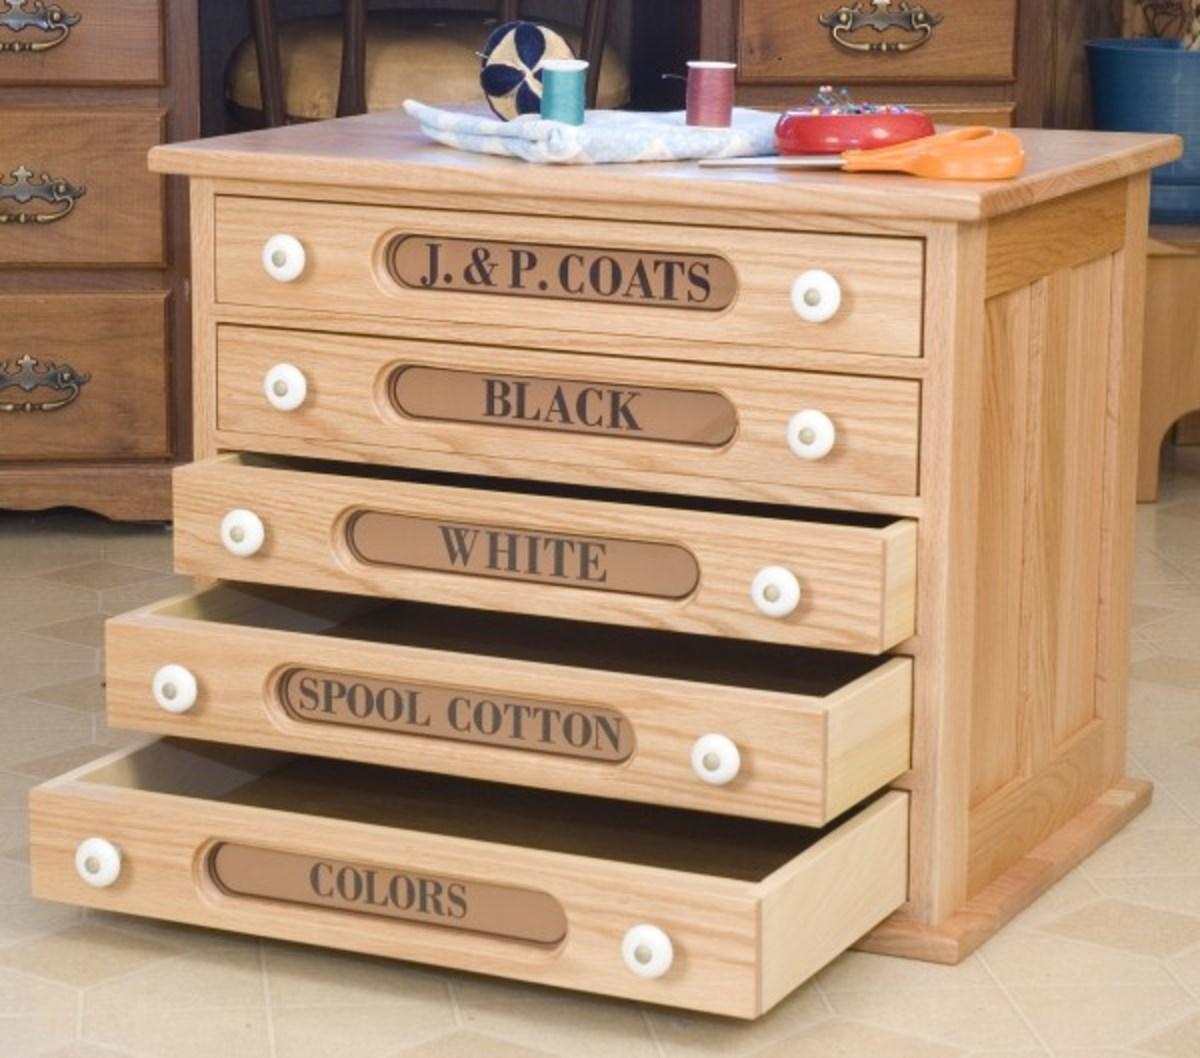 Reproduction spool cabinets from Cottage Craft Works make nice end tables and hobby and scrap book storage.